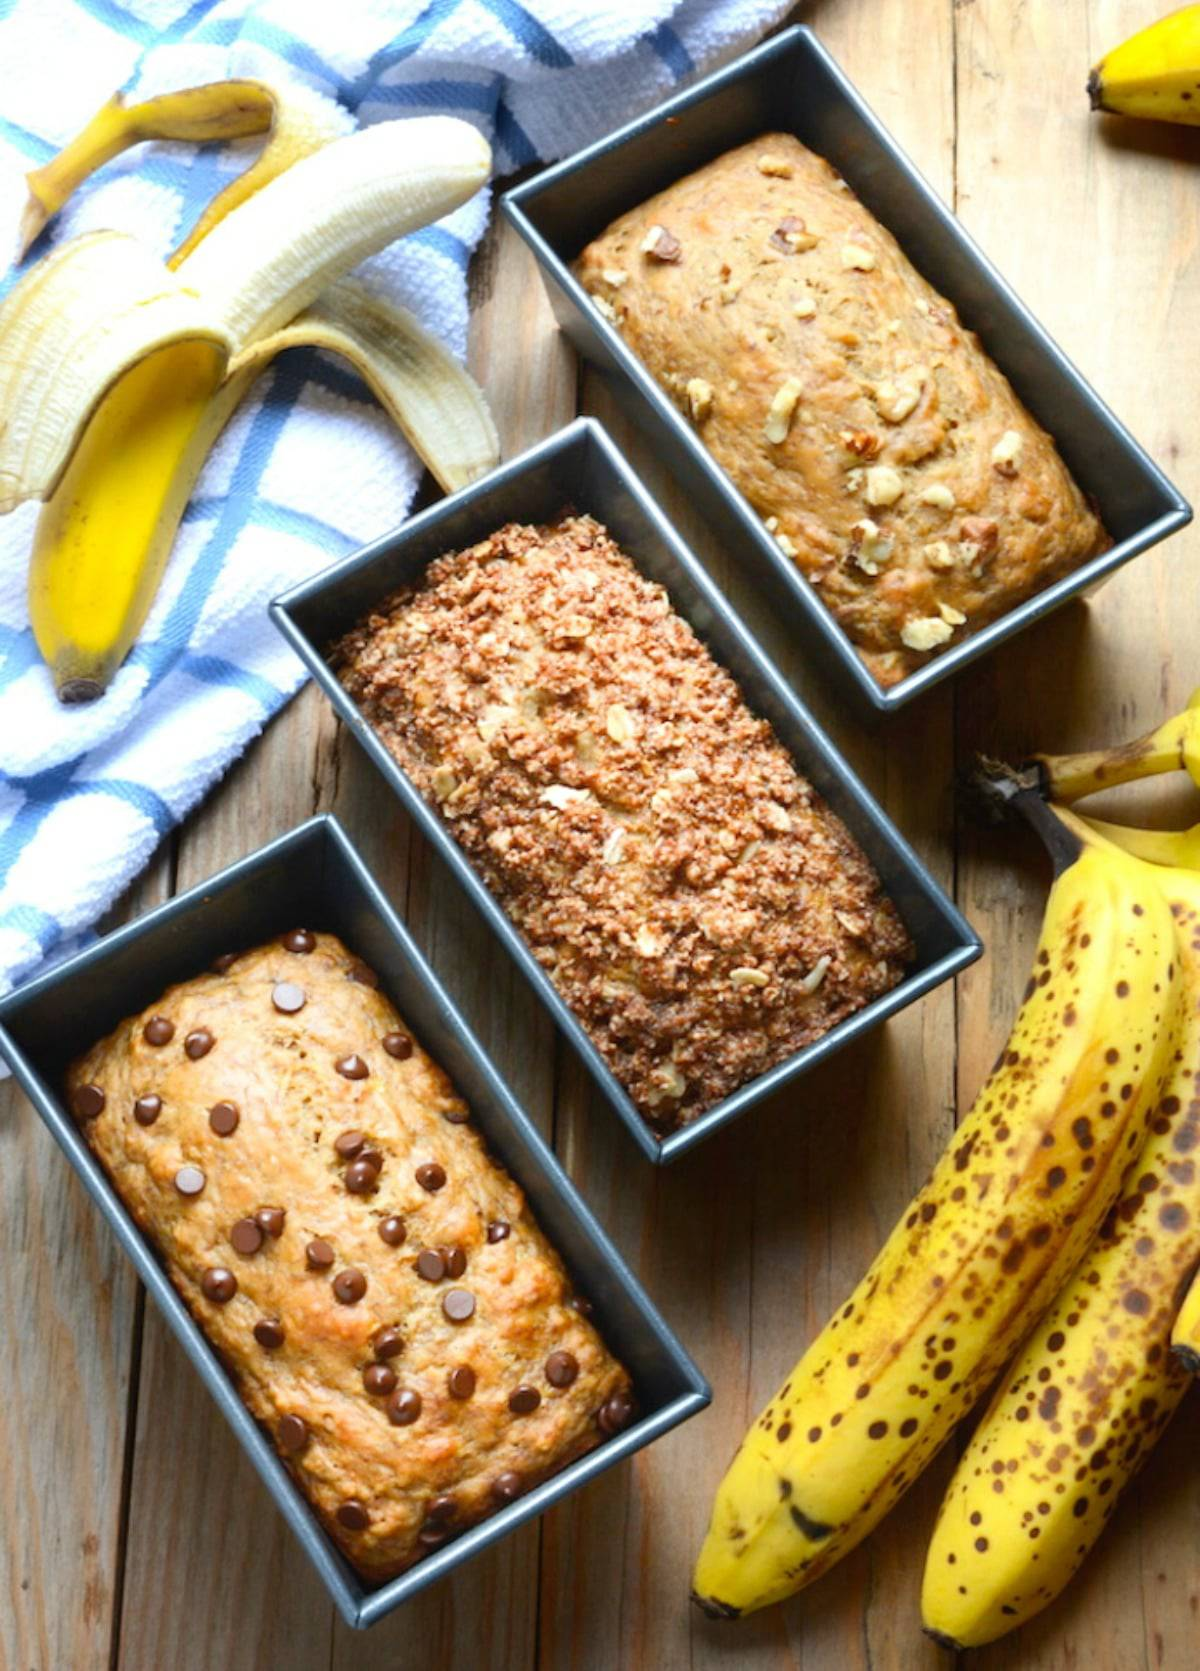 3 mini loaves of vegan banana bread. One with chocolate chips, one with cinnamon and one with walnuts.